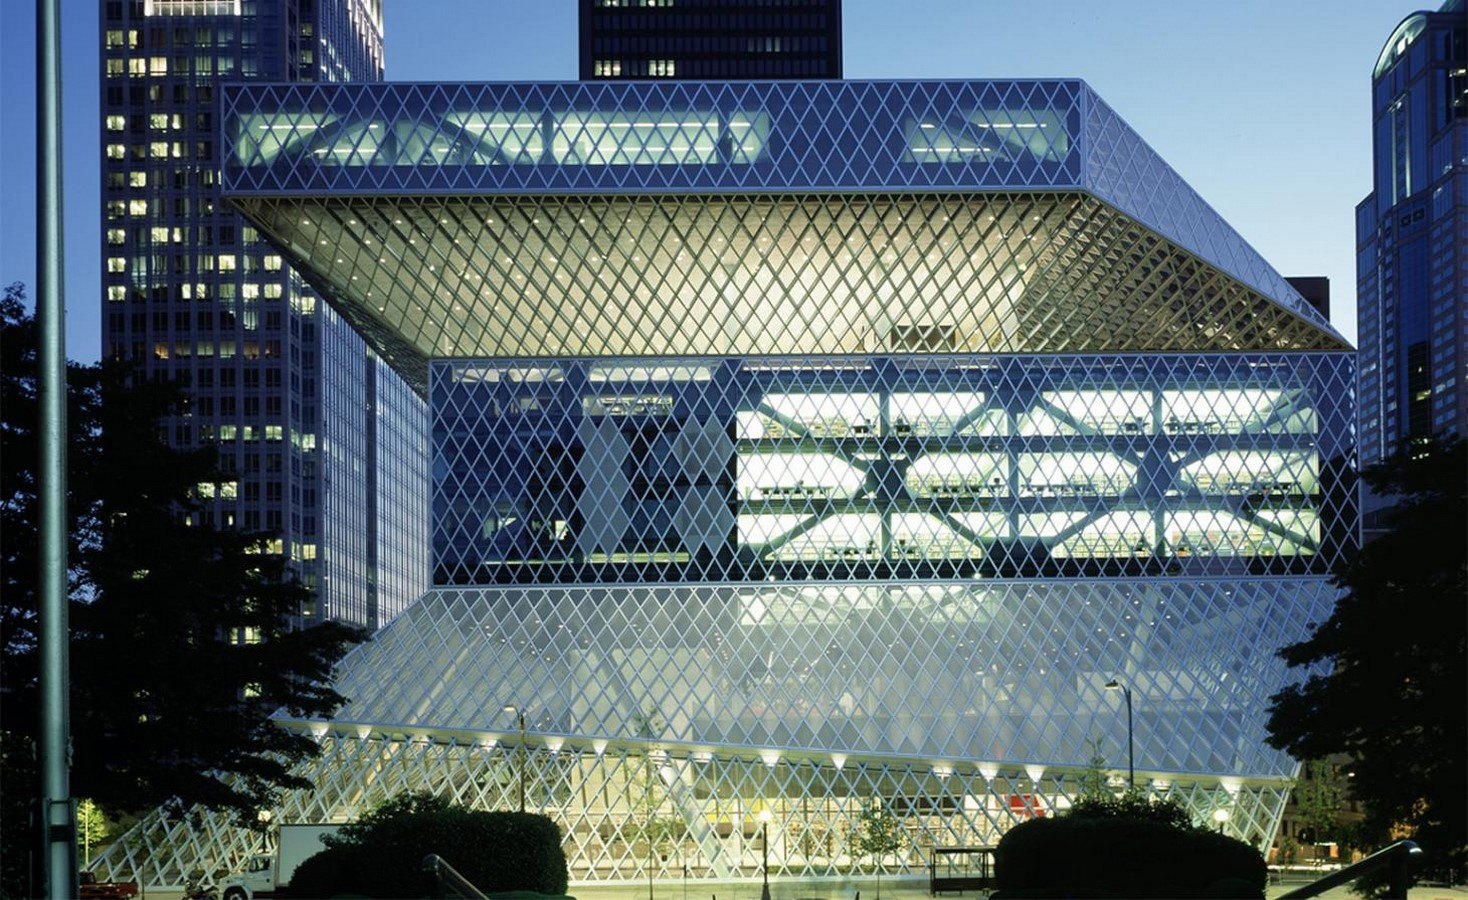 Seattle Central Library by Rem Koolhaas: Flexibility through contemporary - Sheet2